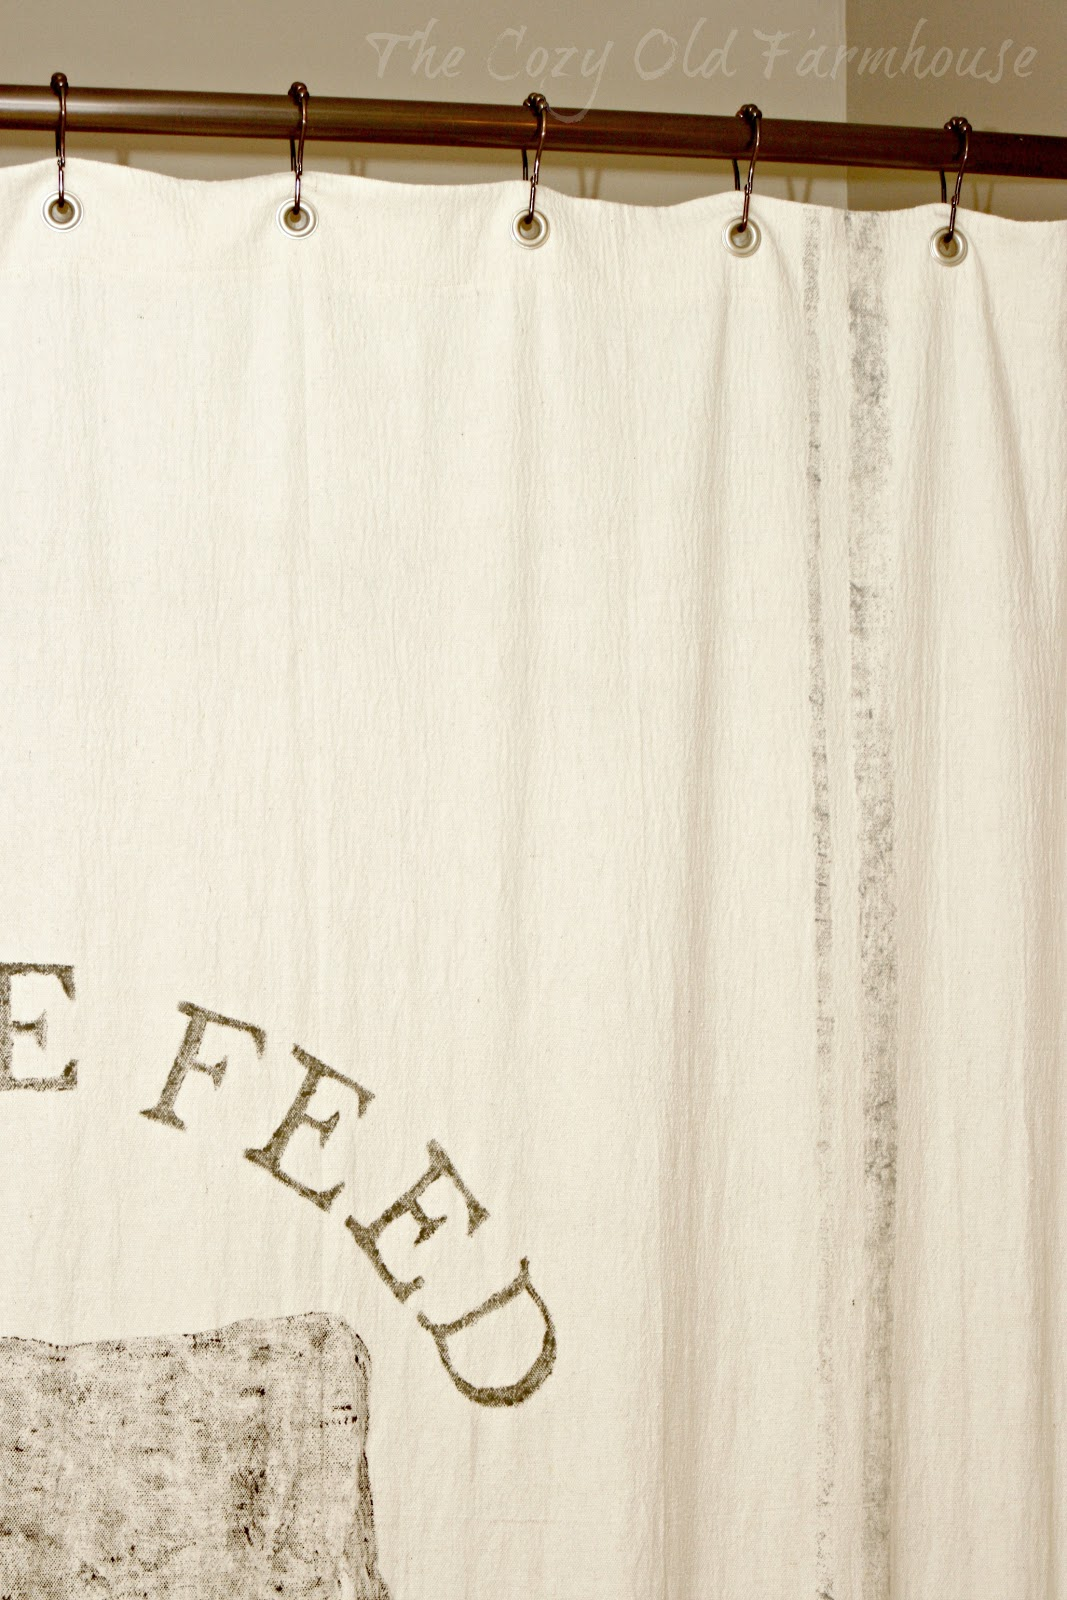 The Cozy Old Farmhouse Painter 39 S Dropcloth Becomes Diy Grain Sack Shower Curtain